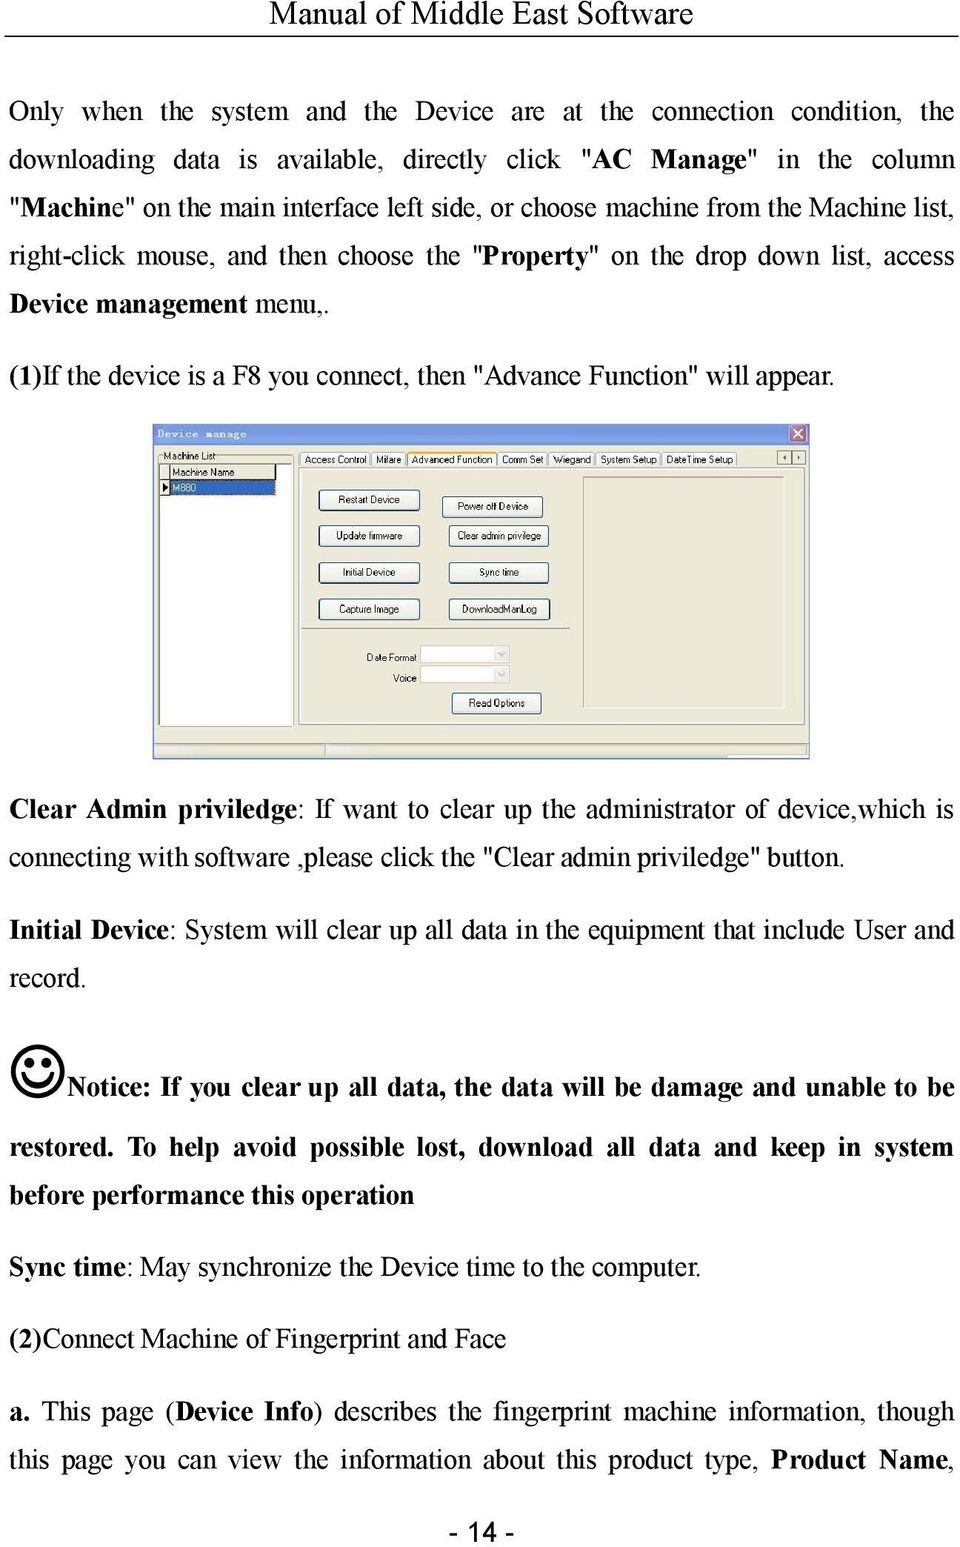 Middle East Software User Manual - PDF